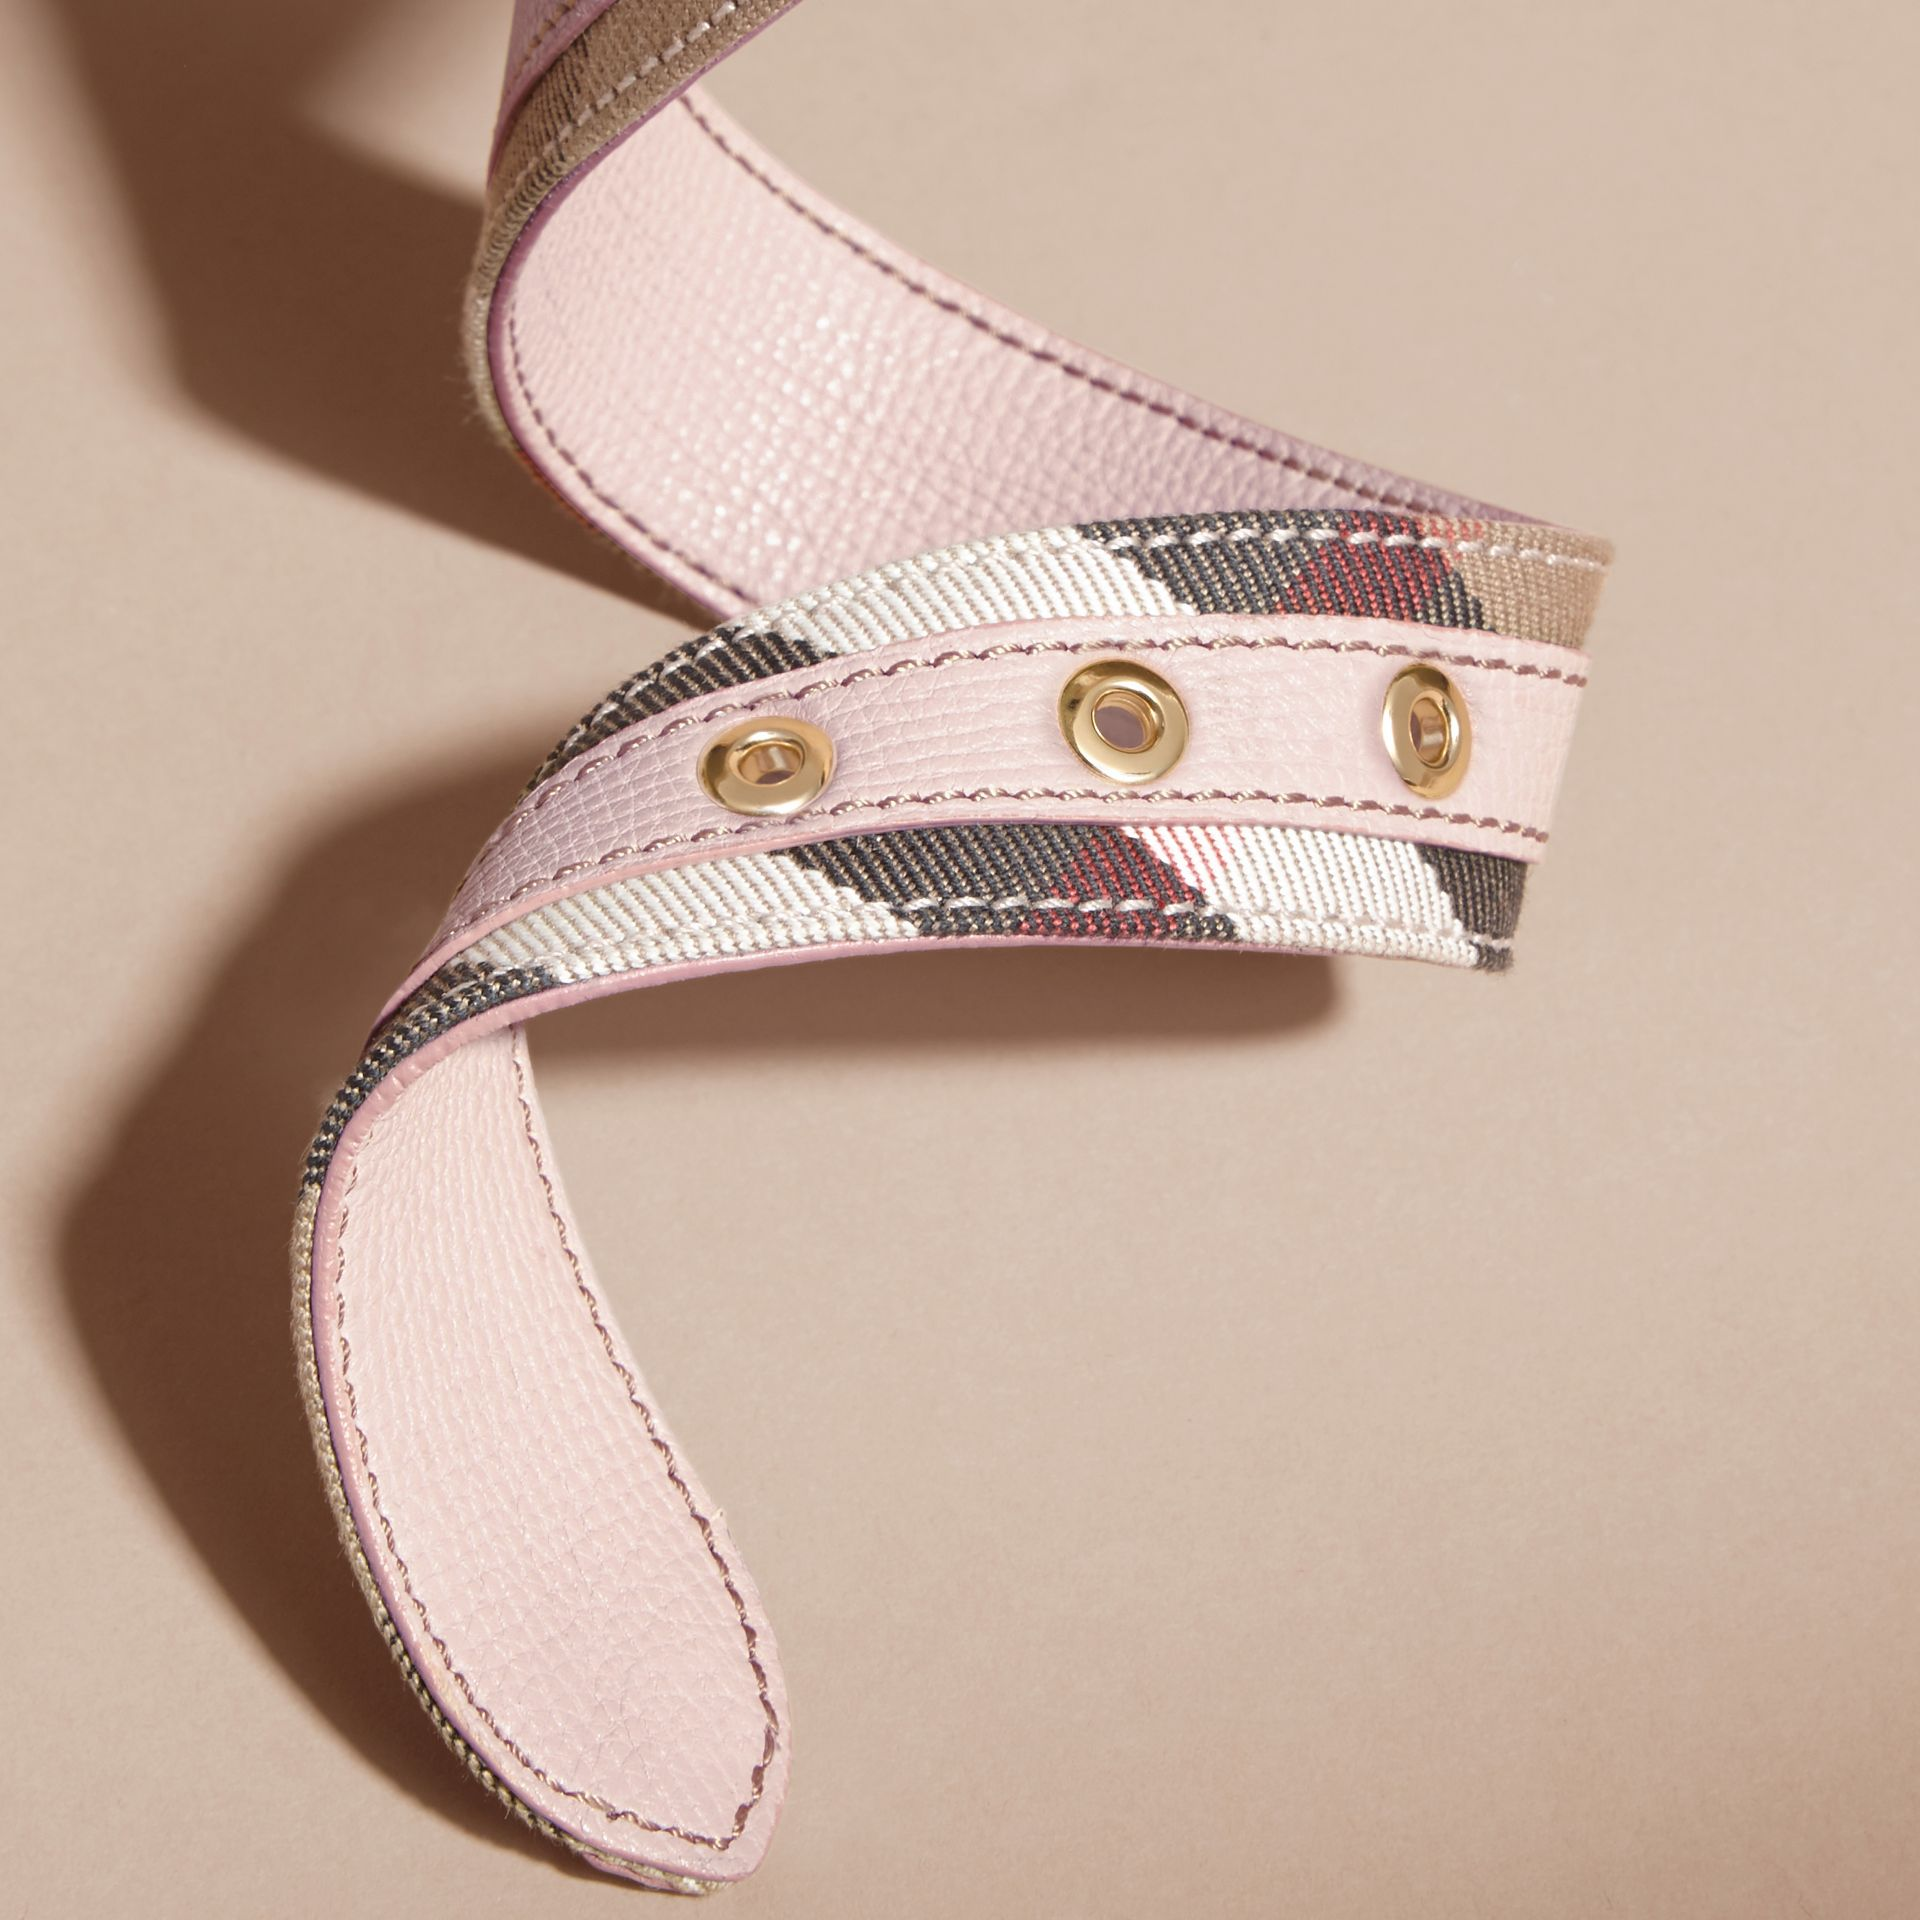 House Check and Grainy Leather Belt in Camel/pale Orchid - Women | Burberry Singapore - gallery image 5